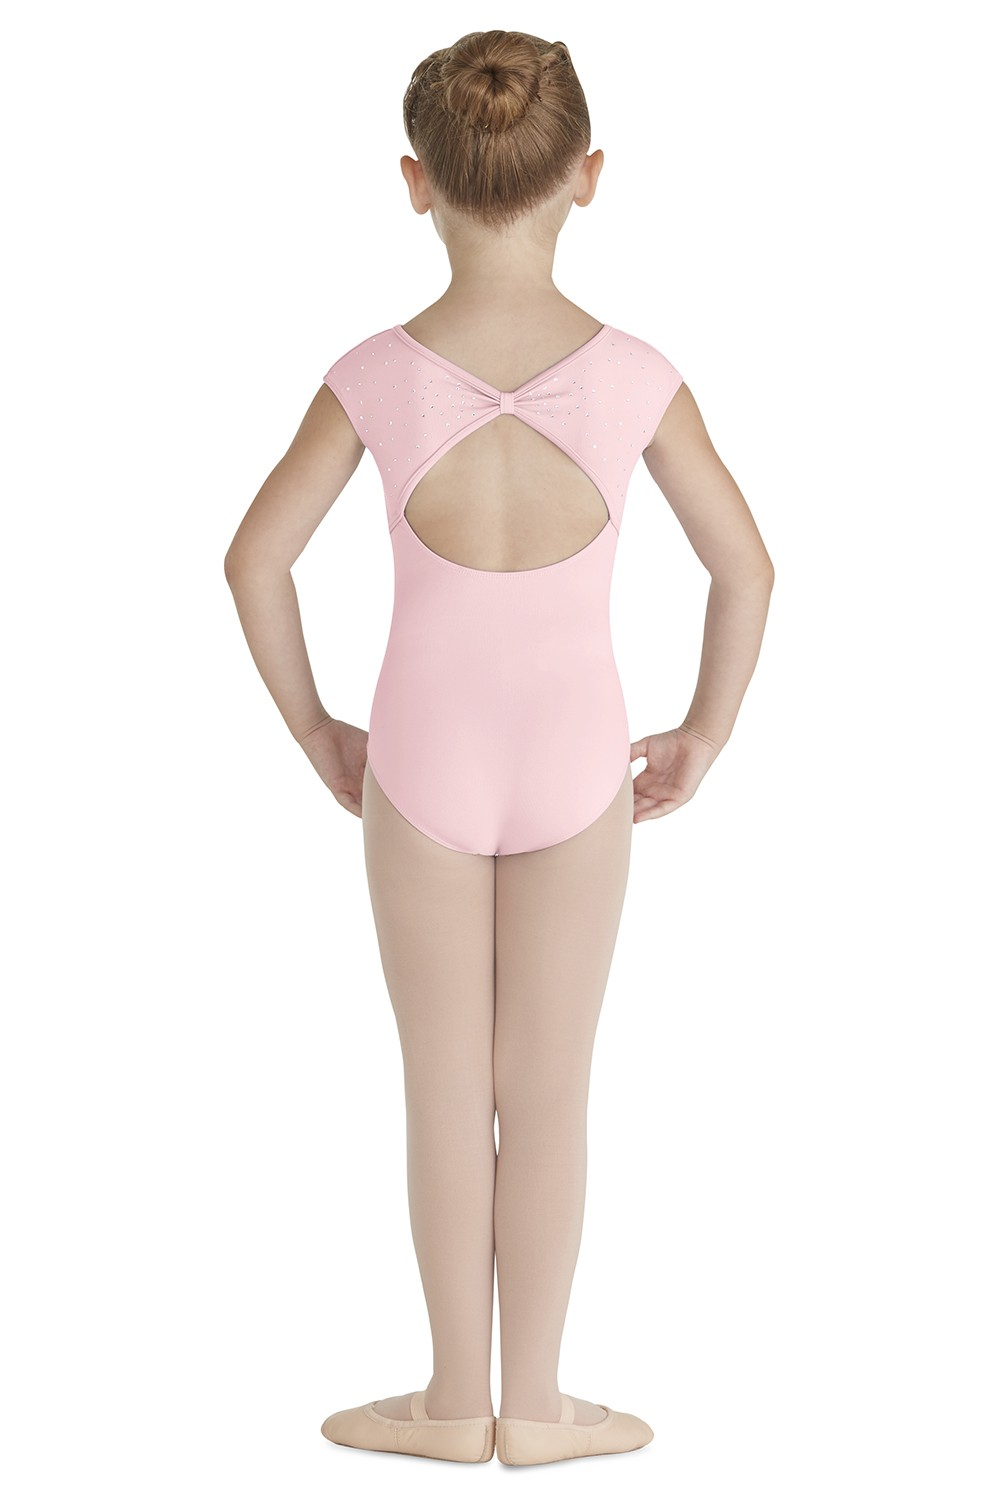 Mazie Children's Dance Leotards